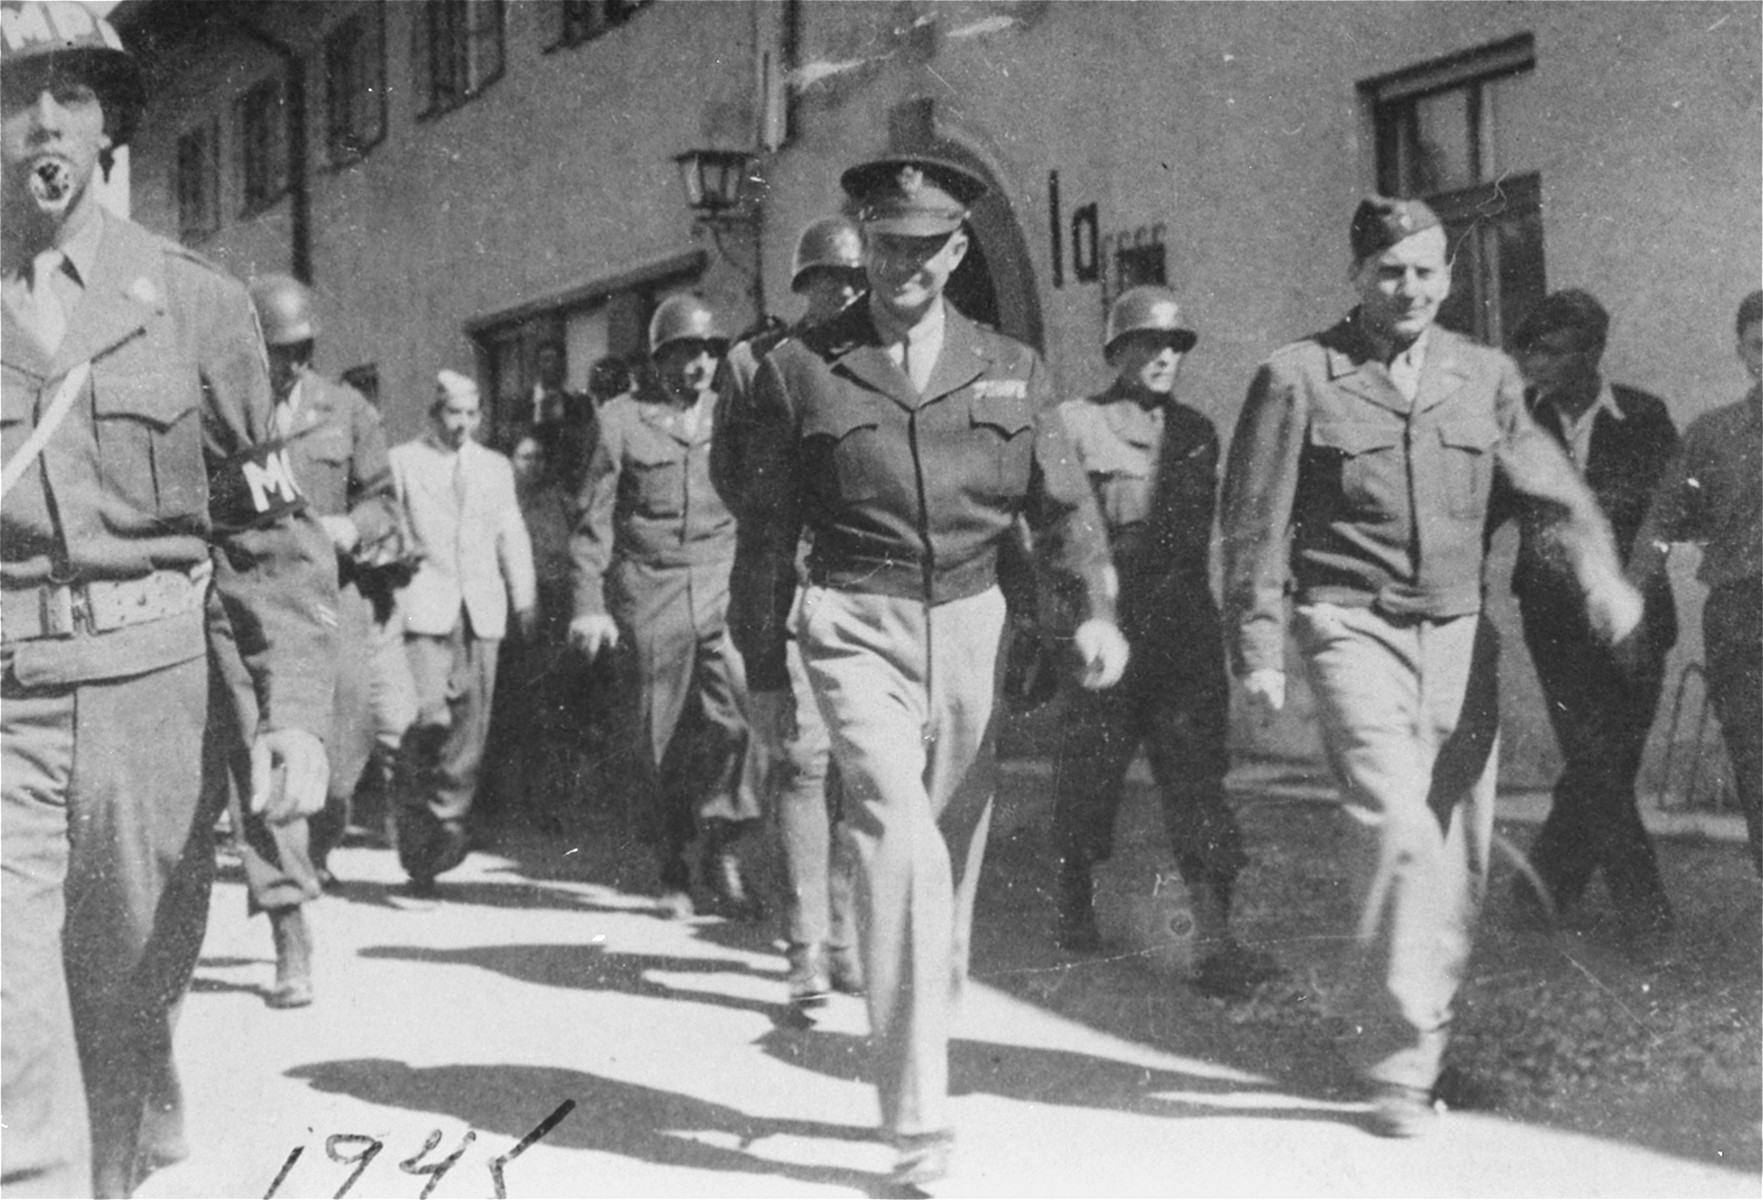 Generals Eisenhower and Patton tour the DP camp at Feldafing.  Eisenhower's visits to Feldafing and other displaced persons' camps in the fall of 1945 was prompted by a strongly worded cable he received  from President Truman directing him to institute reforms to improve the living conditions of displaced Jews in the American zone of occupation. At Feldafing Eisenhower toured the grounds and attended religious services at the camp synagogue, where he delivered a brief address to the assembled survivors. In his speech Eisenhower pledged the assistance of the American army and counselled patience until the Jewish DPs could leave Germany. The Zionist leadership of the camp presented him with two memoranda. One described the situation of the Jews in Feldafing; the other urged free immigration to Palestine and the establishment of a Jewish State. Accompanying Eisenhower on his inspection tour was General George Patton. While Eisenhower was genuinely dismayed by the poor living conditions he saw in the camp, Patton showed no sympathy toward the survivors.